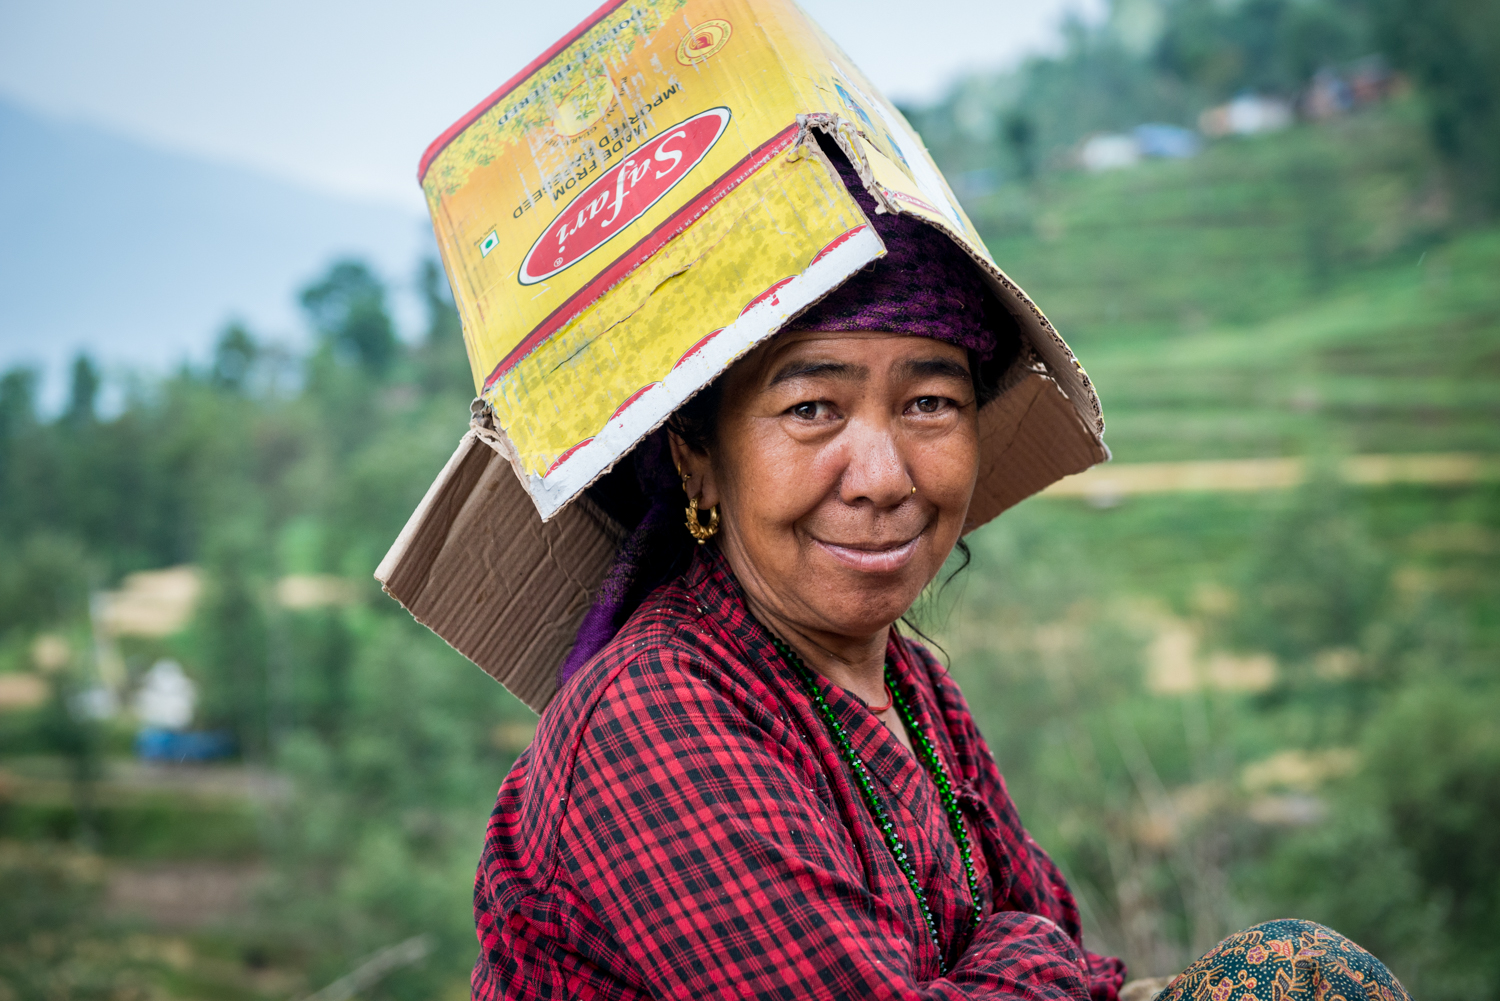 A woman in sindhupalchok goofs around and wears a box to protect herself from the rain.